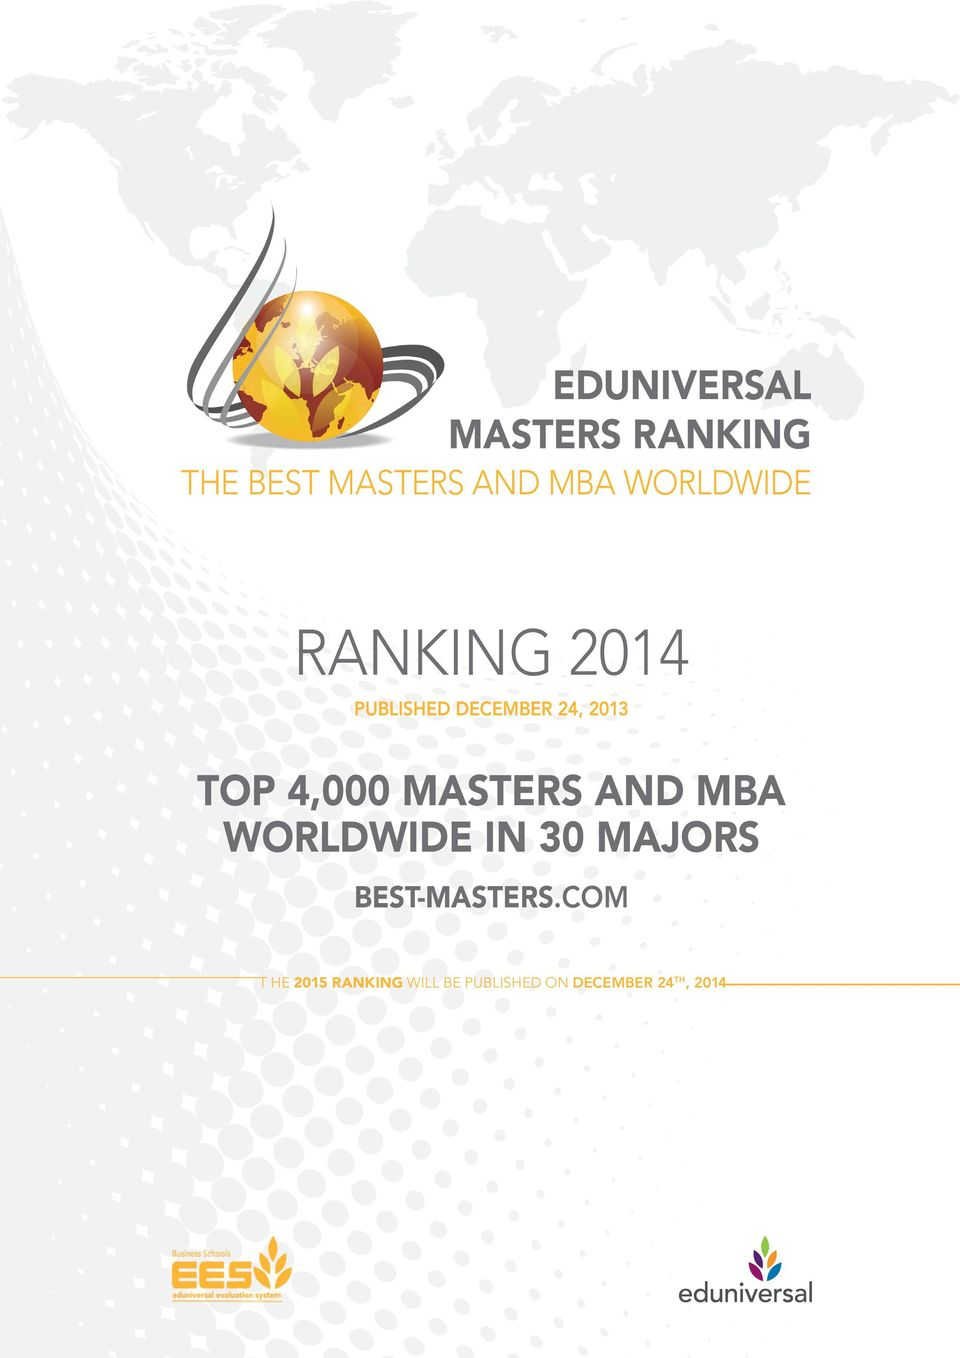 4,000 MASTERS AND MBA WORLDWIDE IN 30 MAJORS